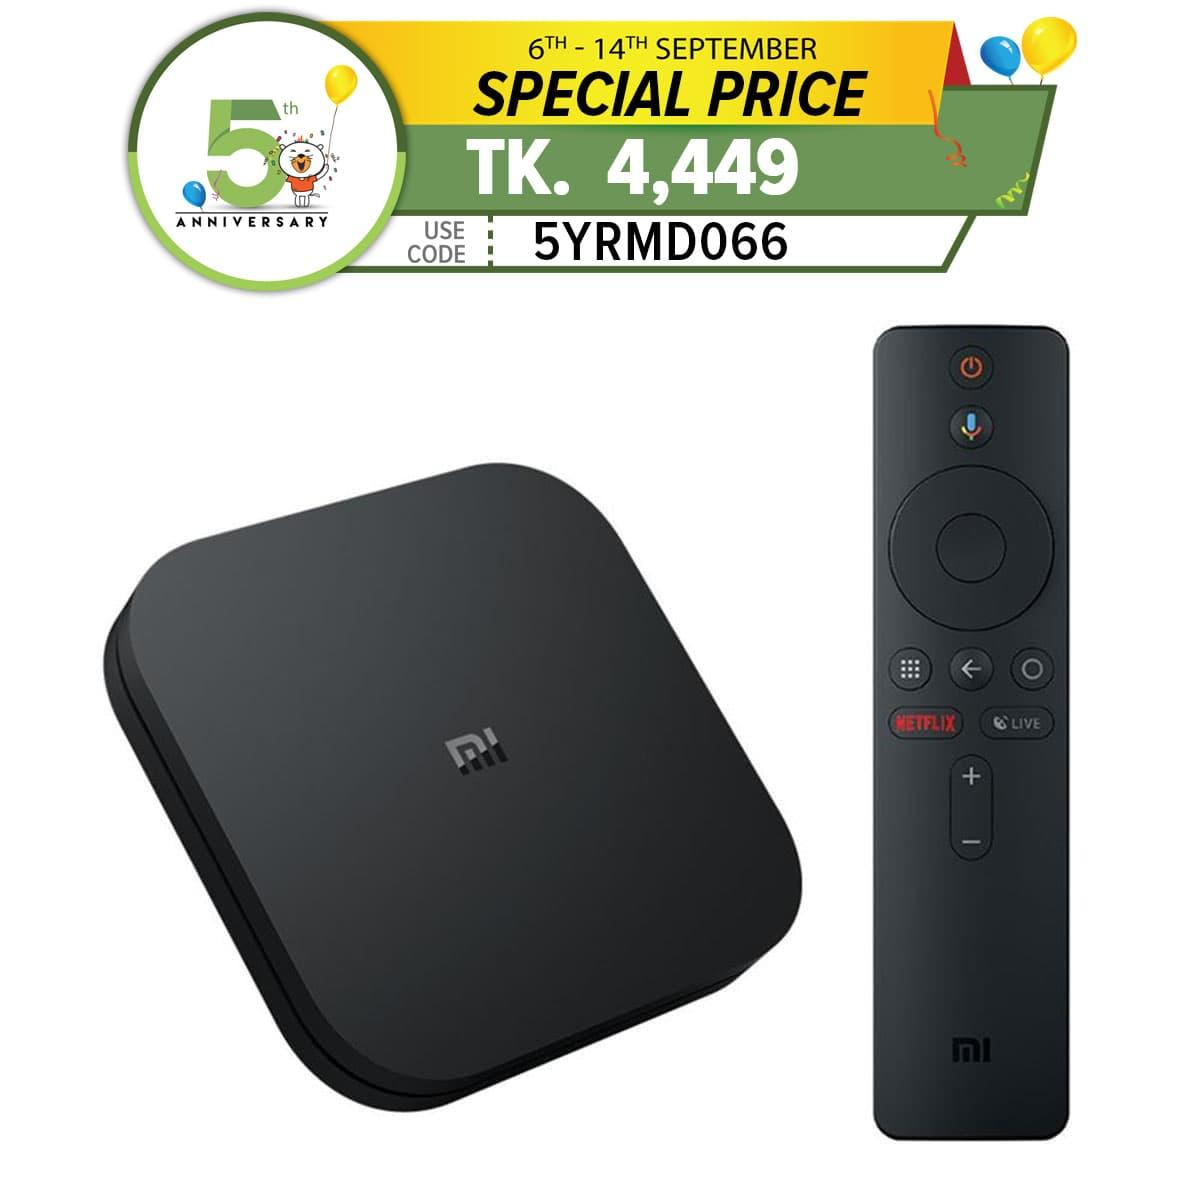 Mi TV Box S with Google Assistant and built-in Chromecast - black